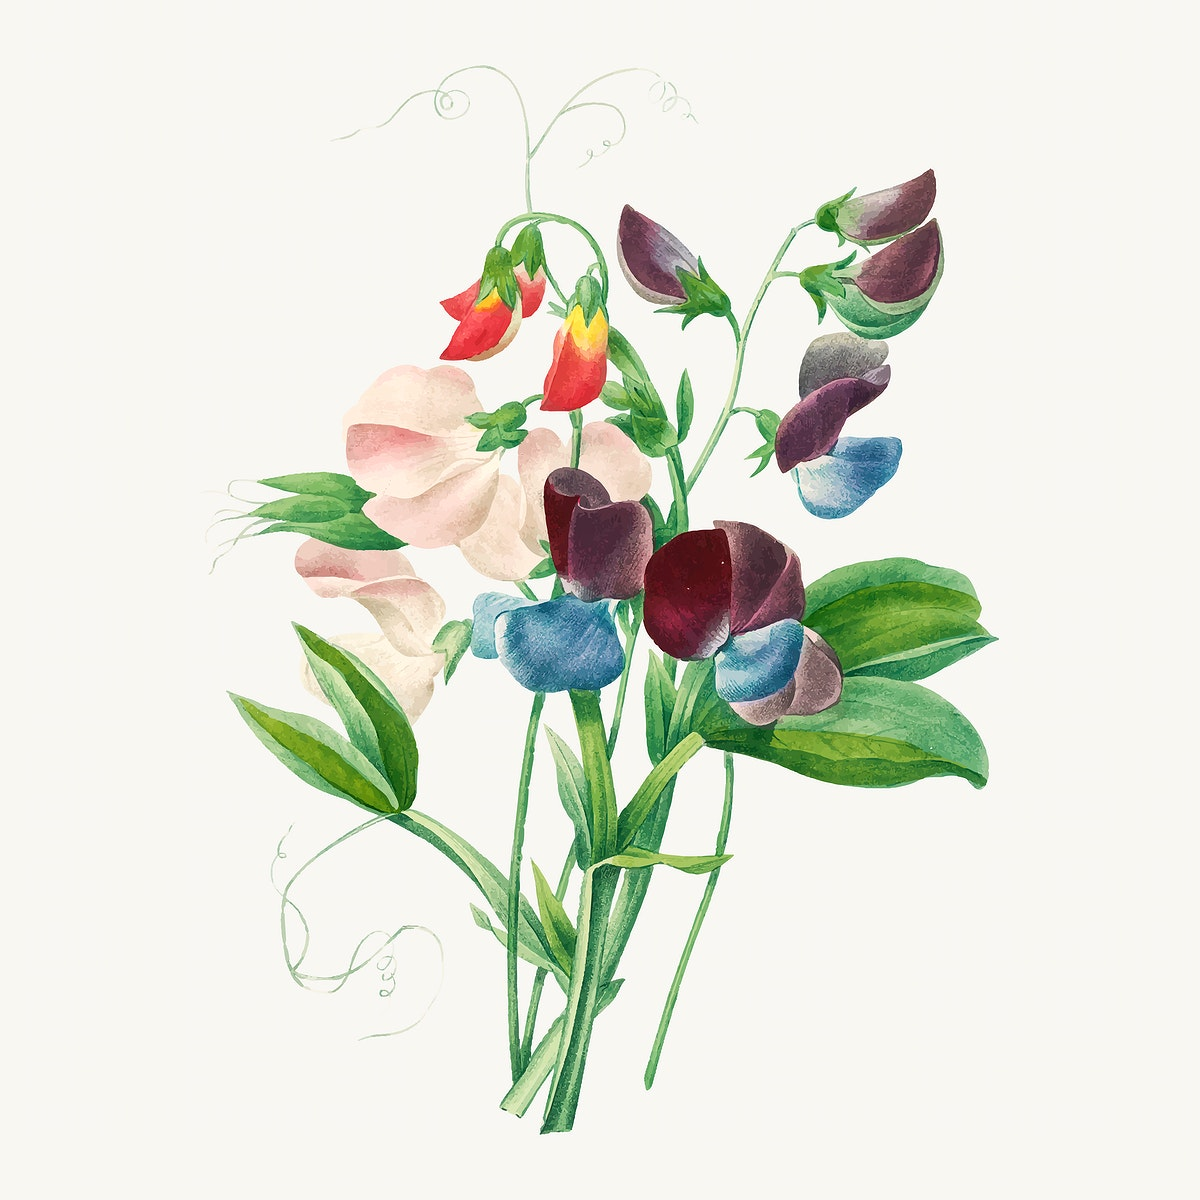 Sweet pea flower vector, remixed from artworks by Pierre-Joseph Redouté